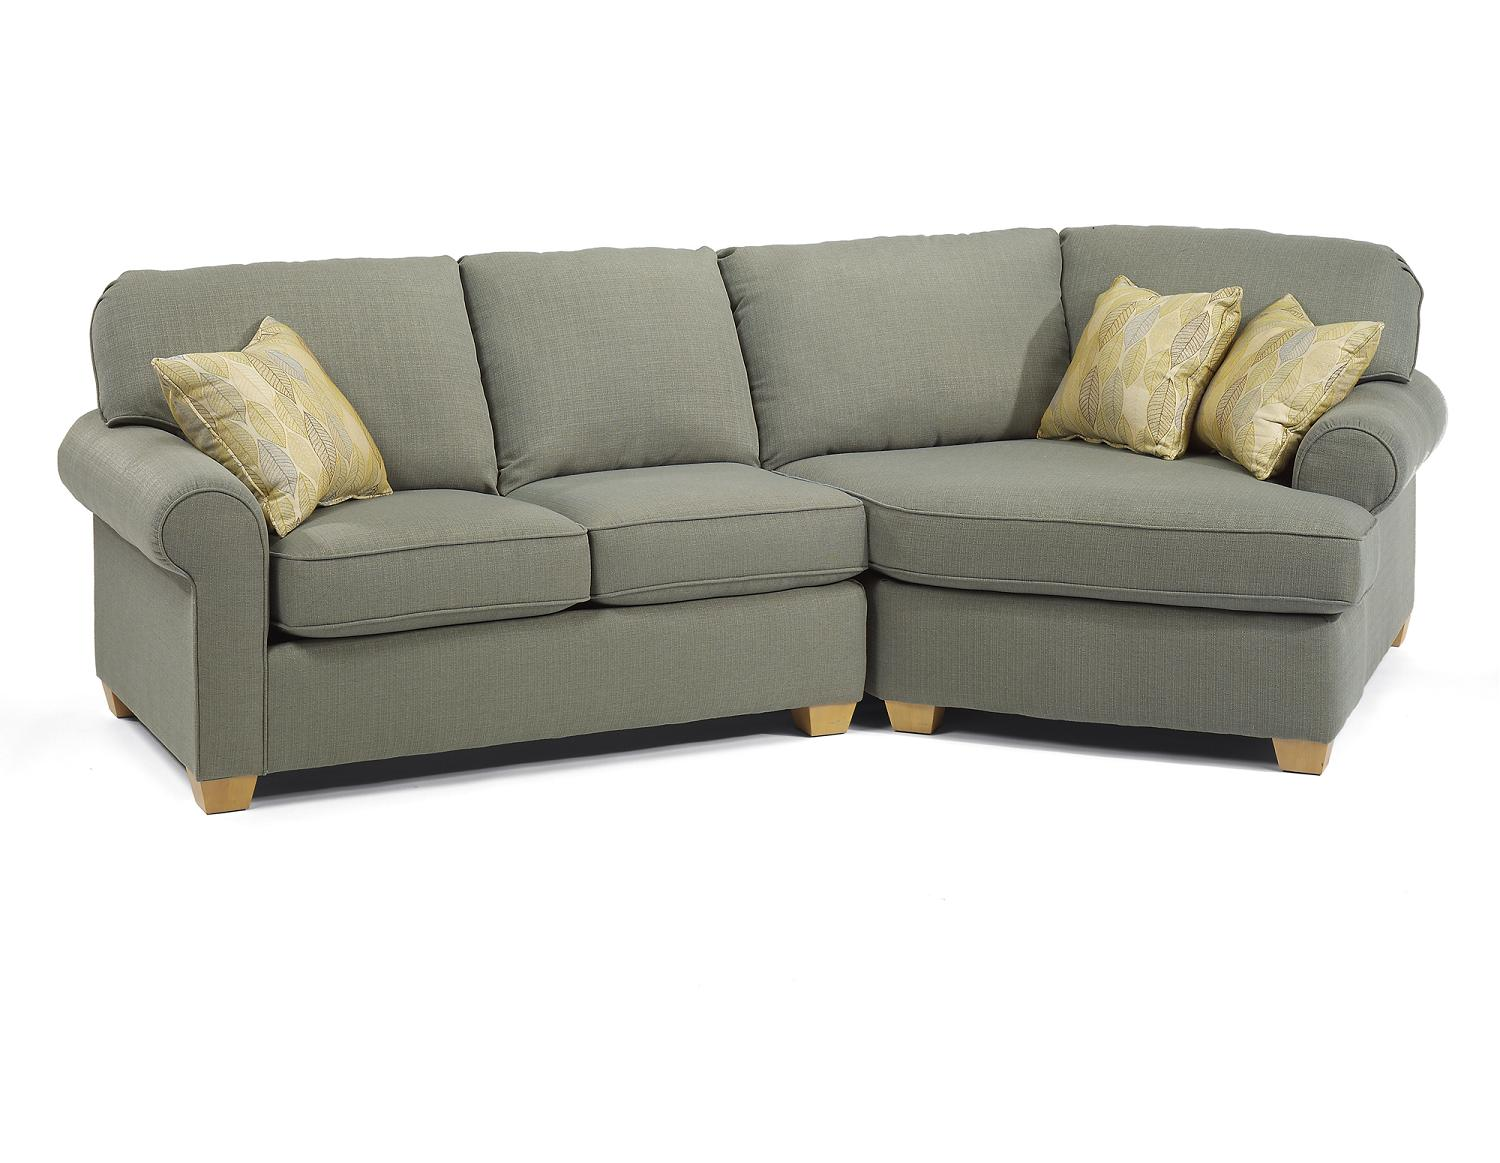 How To Pick Wide Couch amp Sofa Ideas Interior